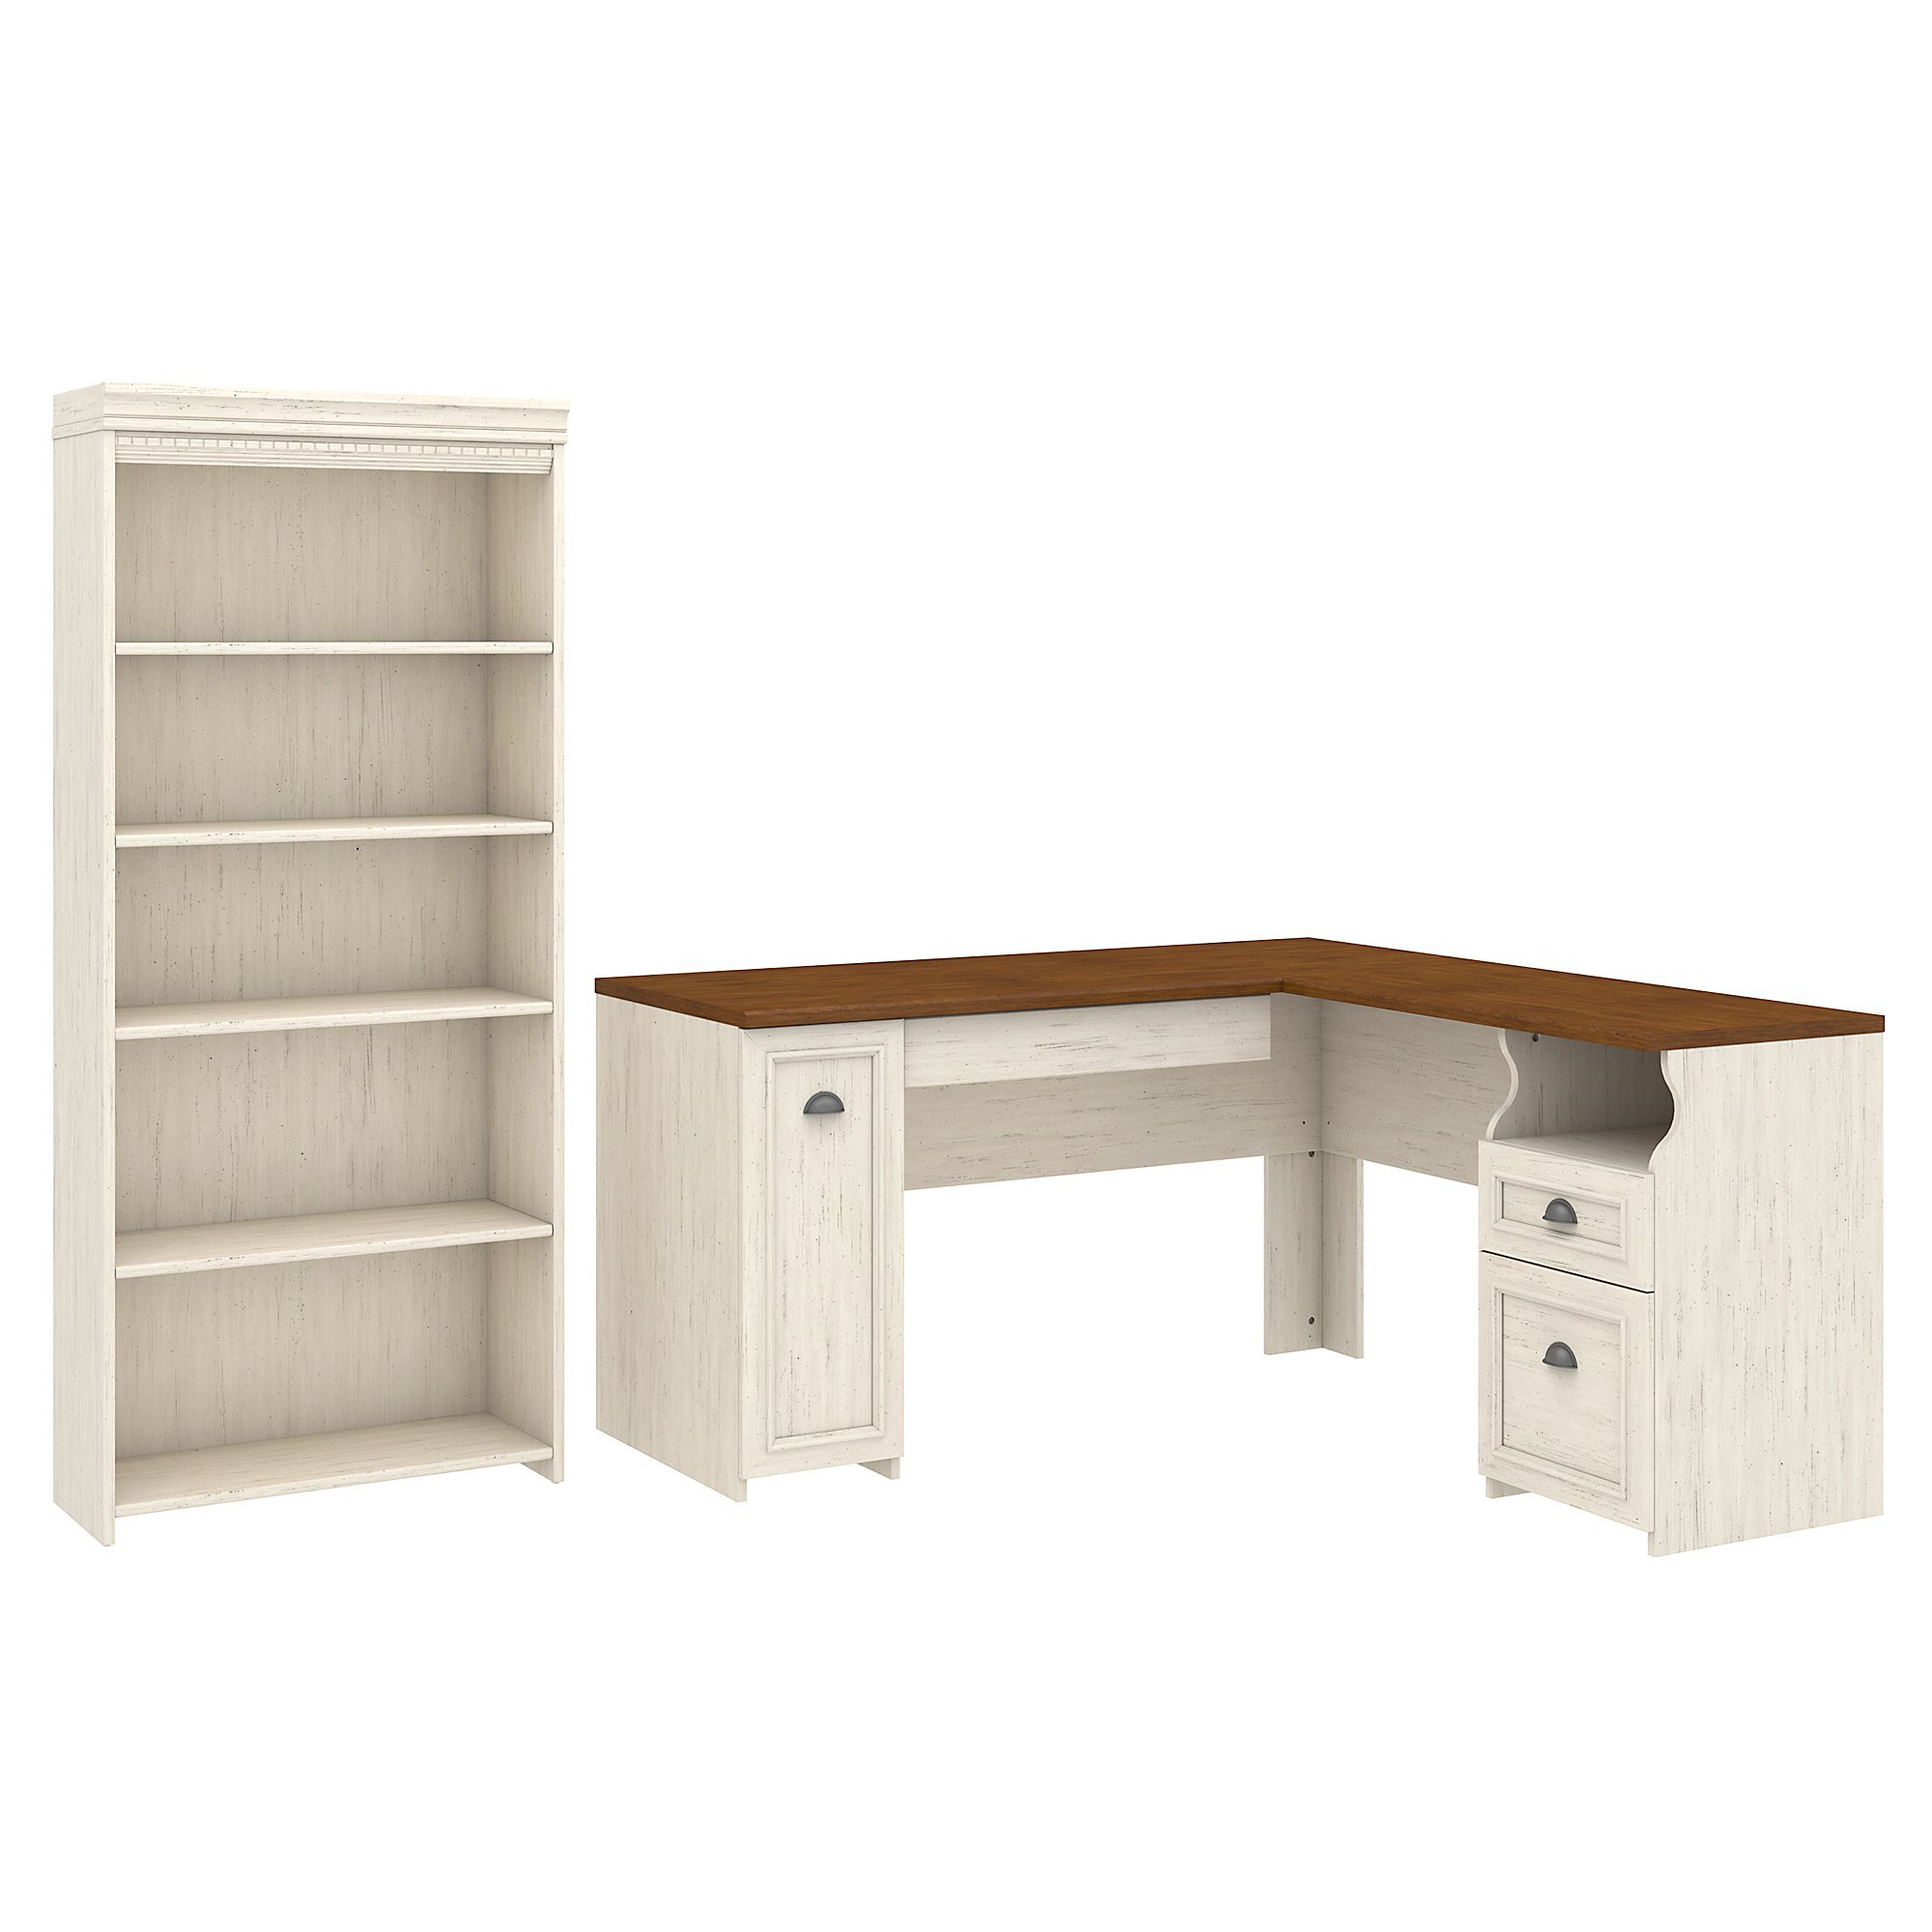 Bush Furniture Fairview L Shaped Desk and 5 Shelf Bookcase in Antique White